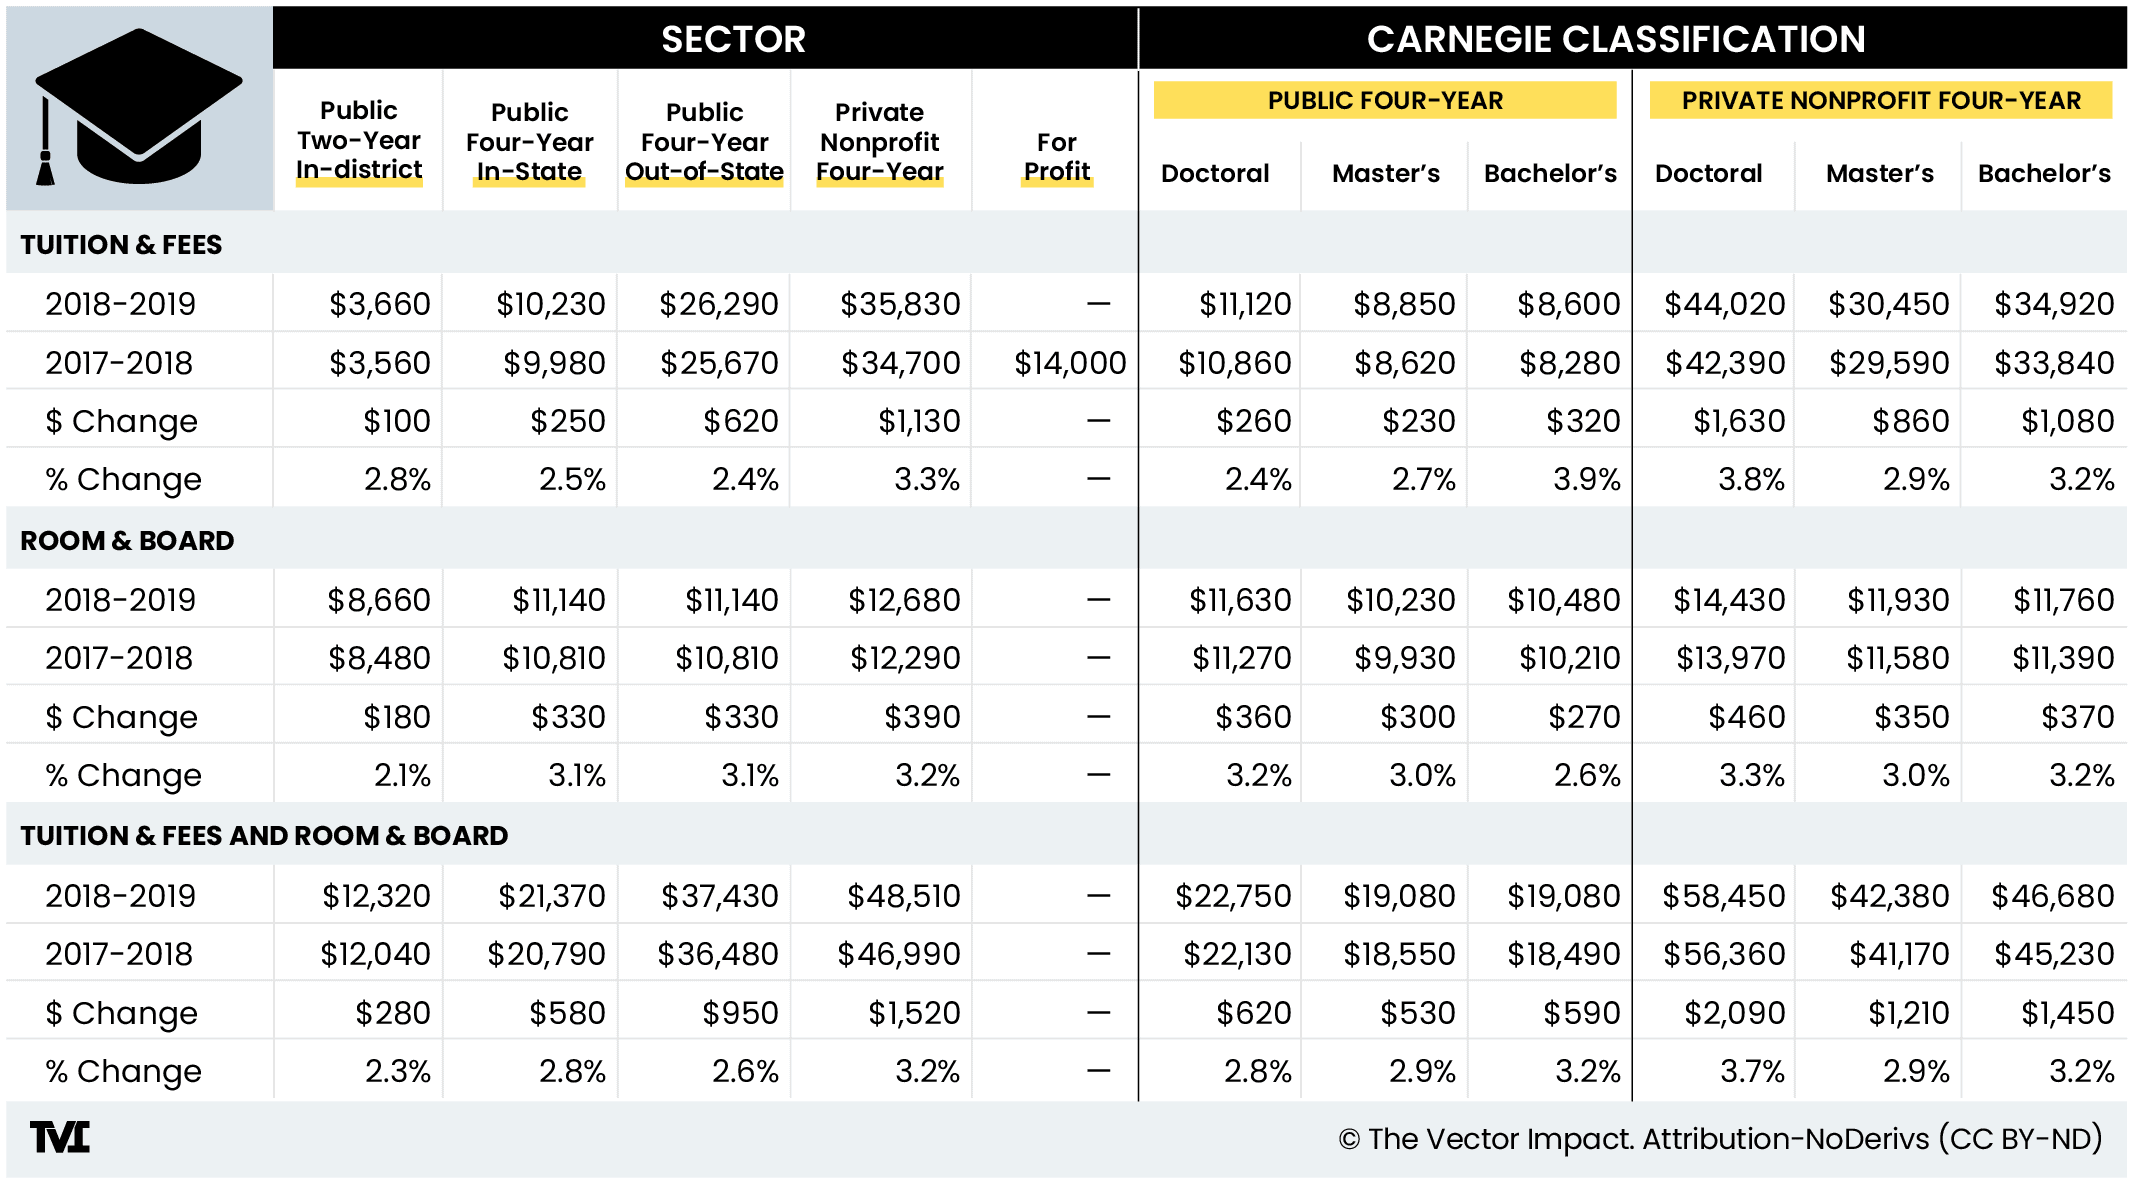 College pricing figures table. Cost of specific degrees (doctoral, master's, bachelor's). Cost comparison of public two-year in-district, public four-year in-state and out-of-state, private nonprofit, and for-profit colleges